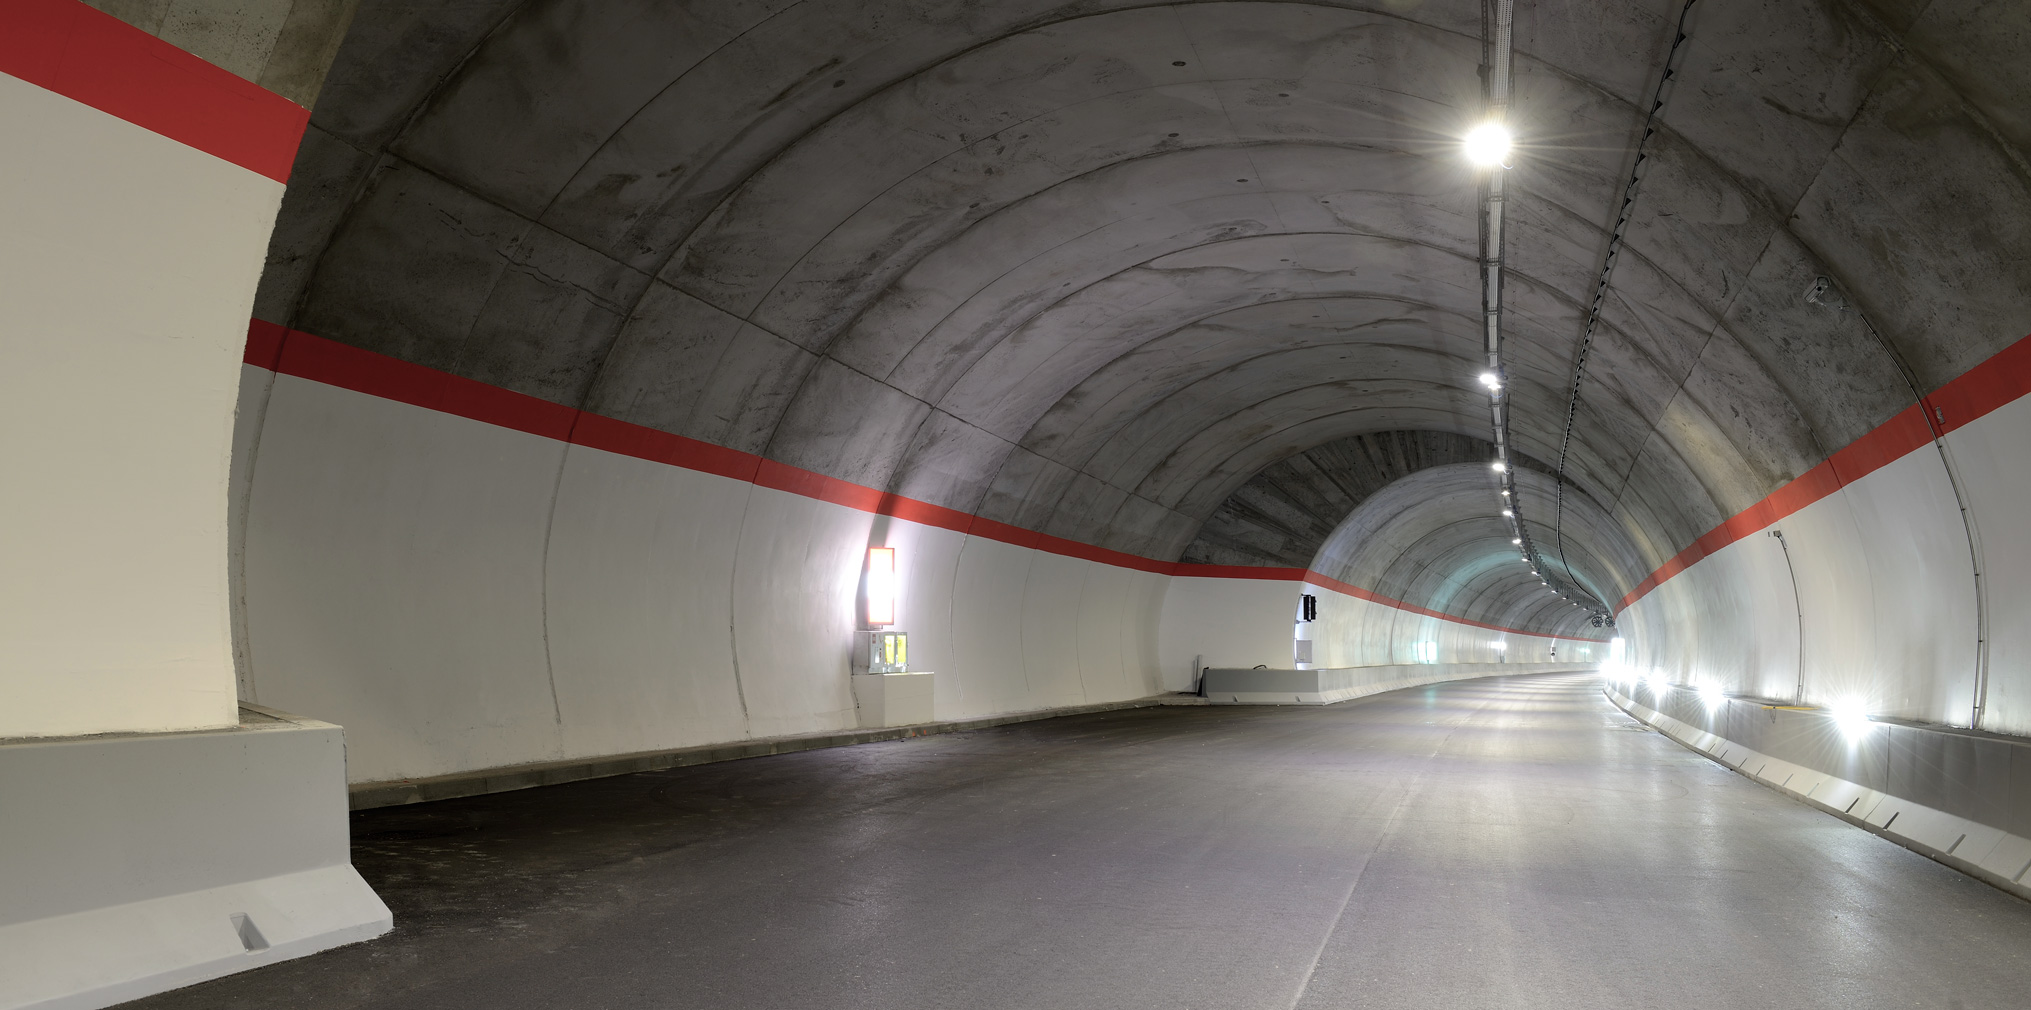 ss 237 del caffaro road tunnel during the testing phase